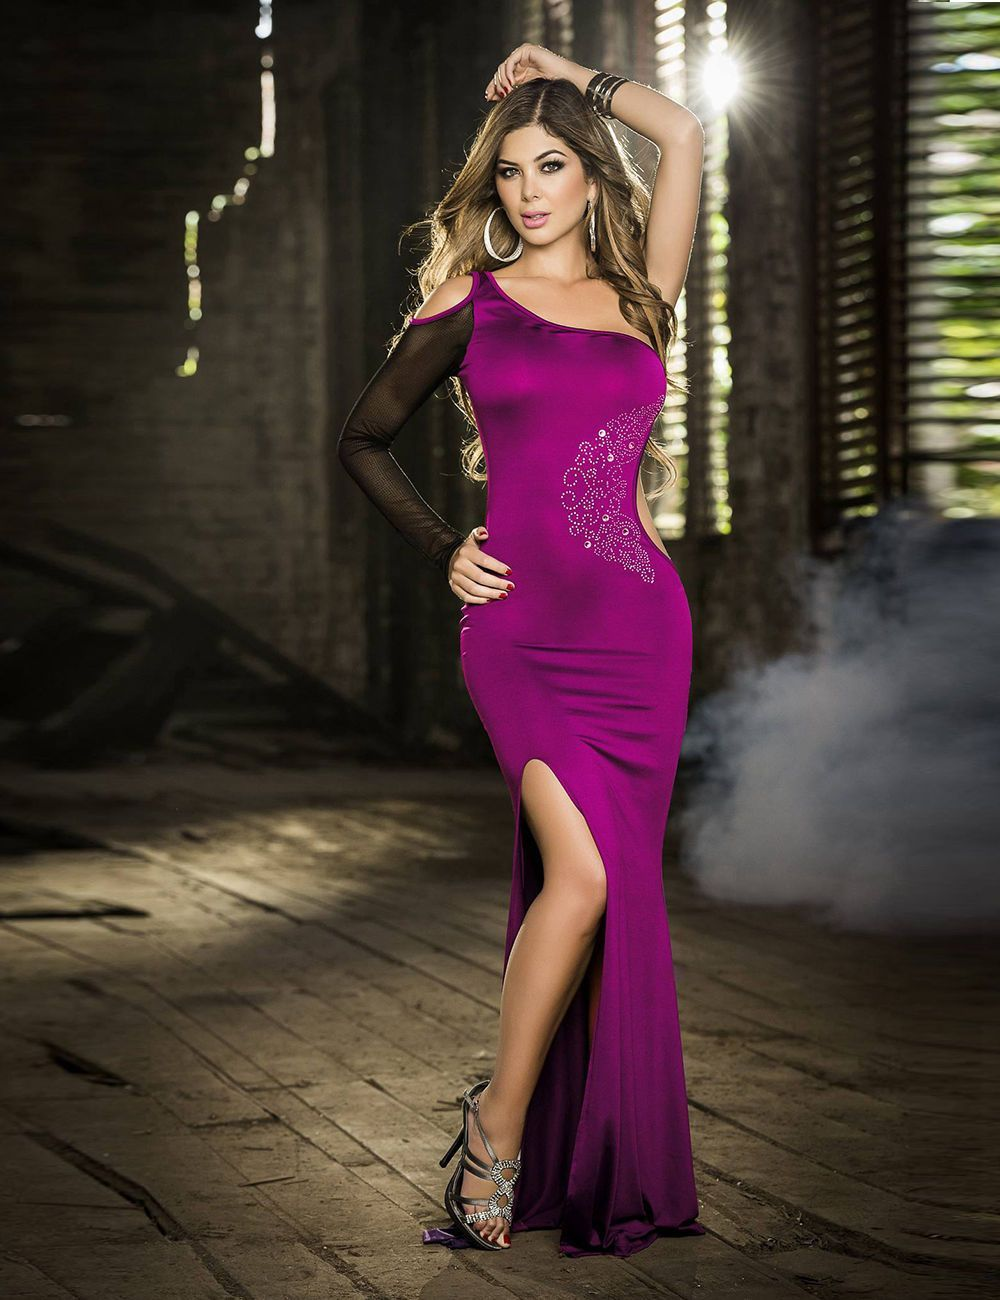 2016 Deluxe Purple One-Shoulder Long Dress | Products | Pinterest